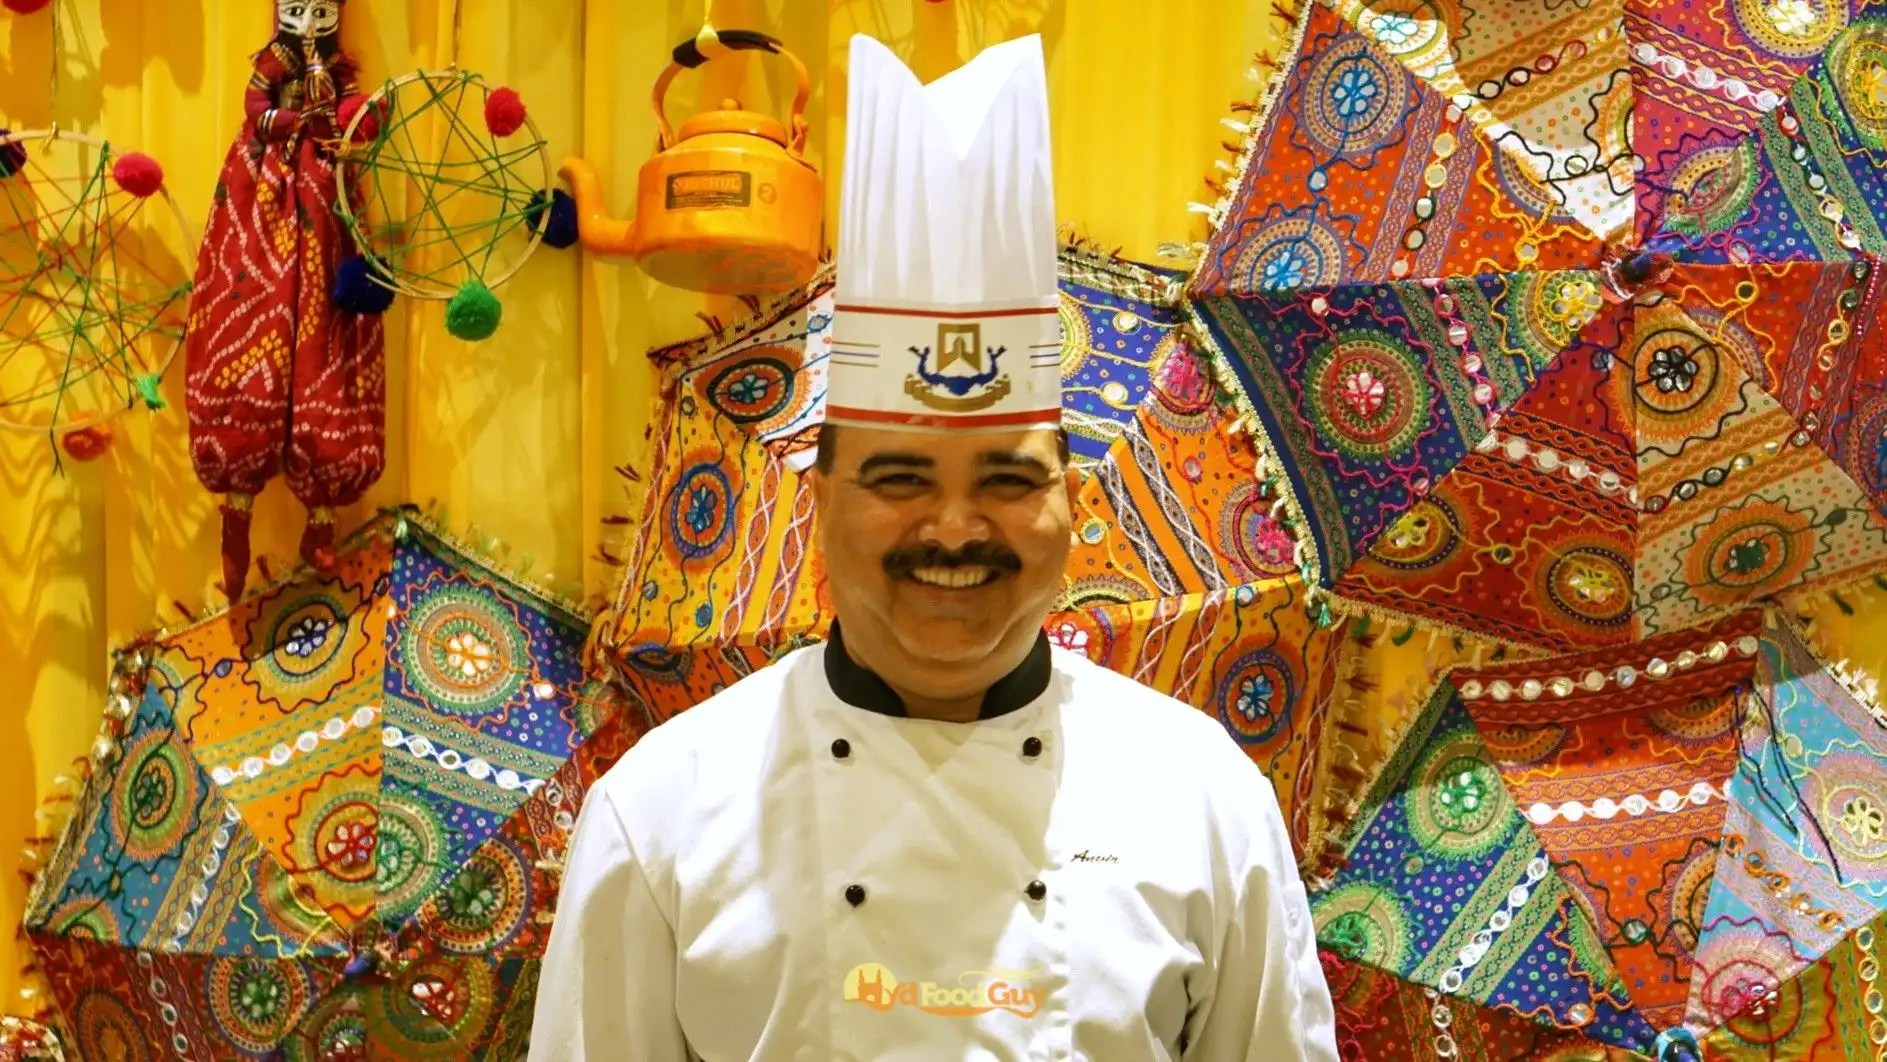 Rajasthani Food - Chef Anvir Singh